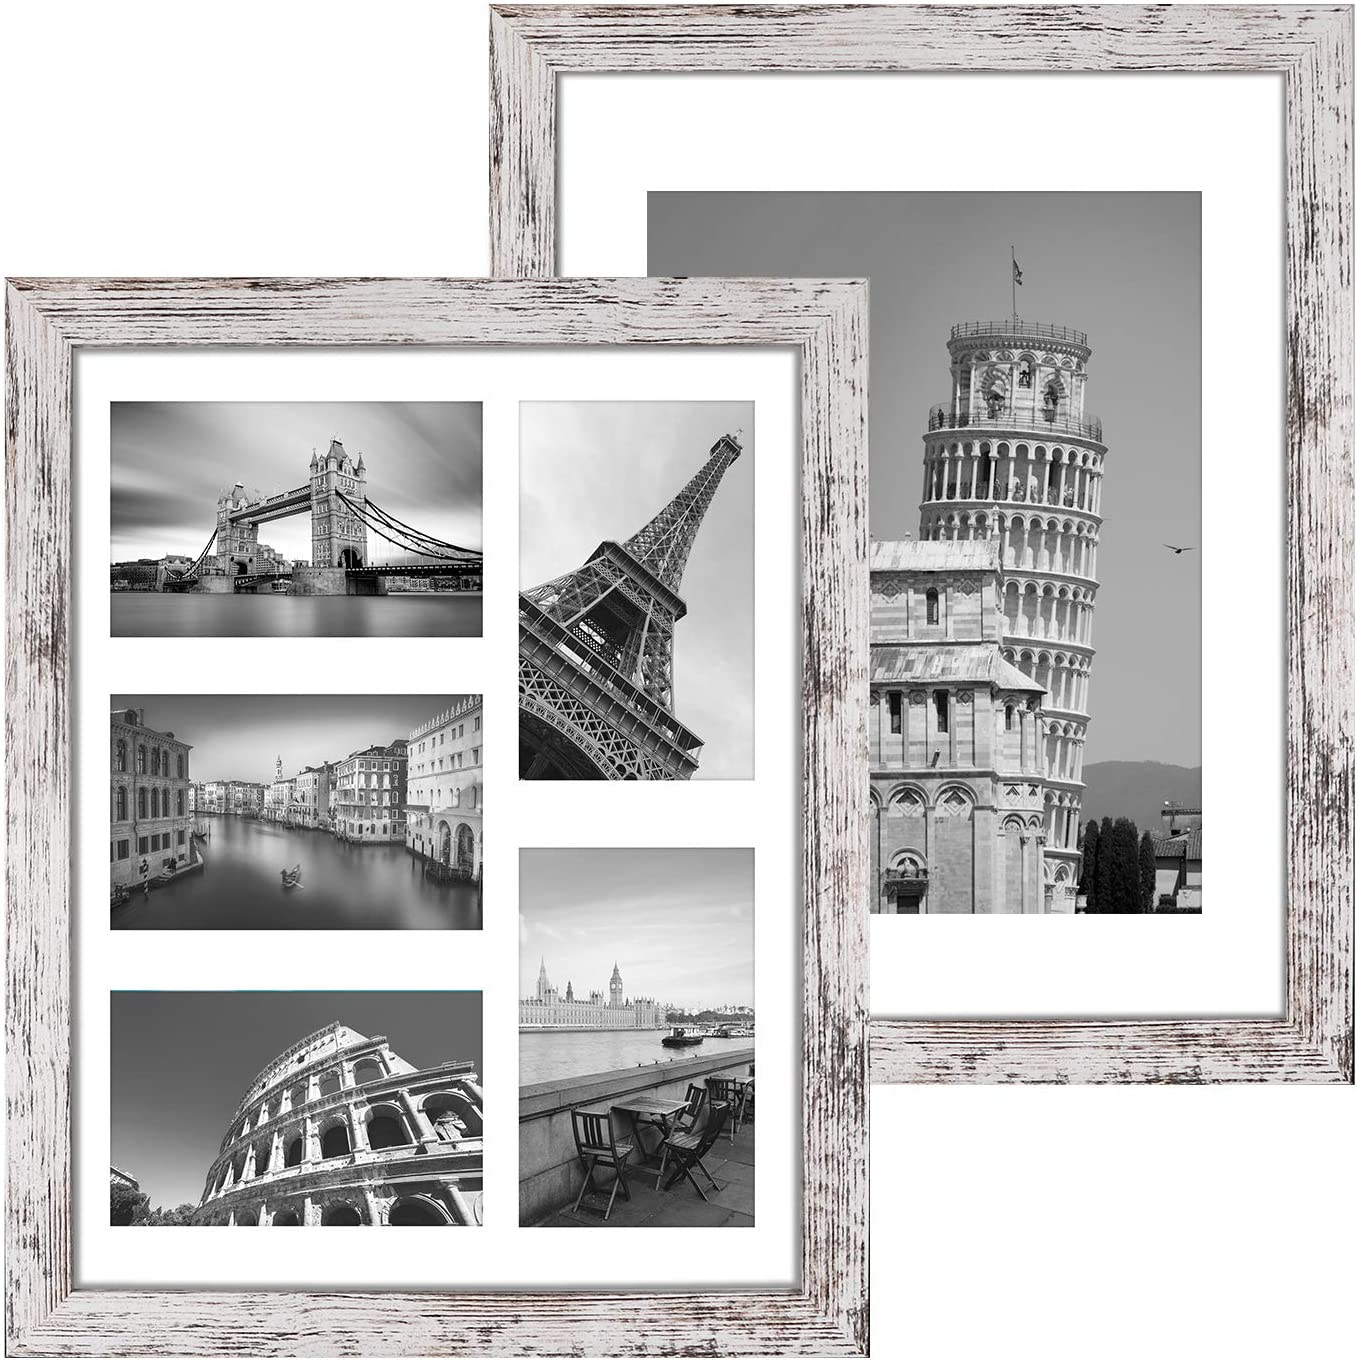 Q.Hou 11x14 Picture Frames Wood Patten Set White Distressed Finally popular brand of New products world's highest quality popular 2